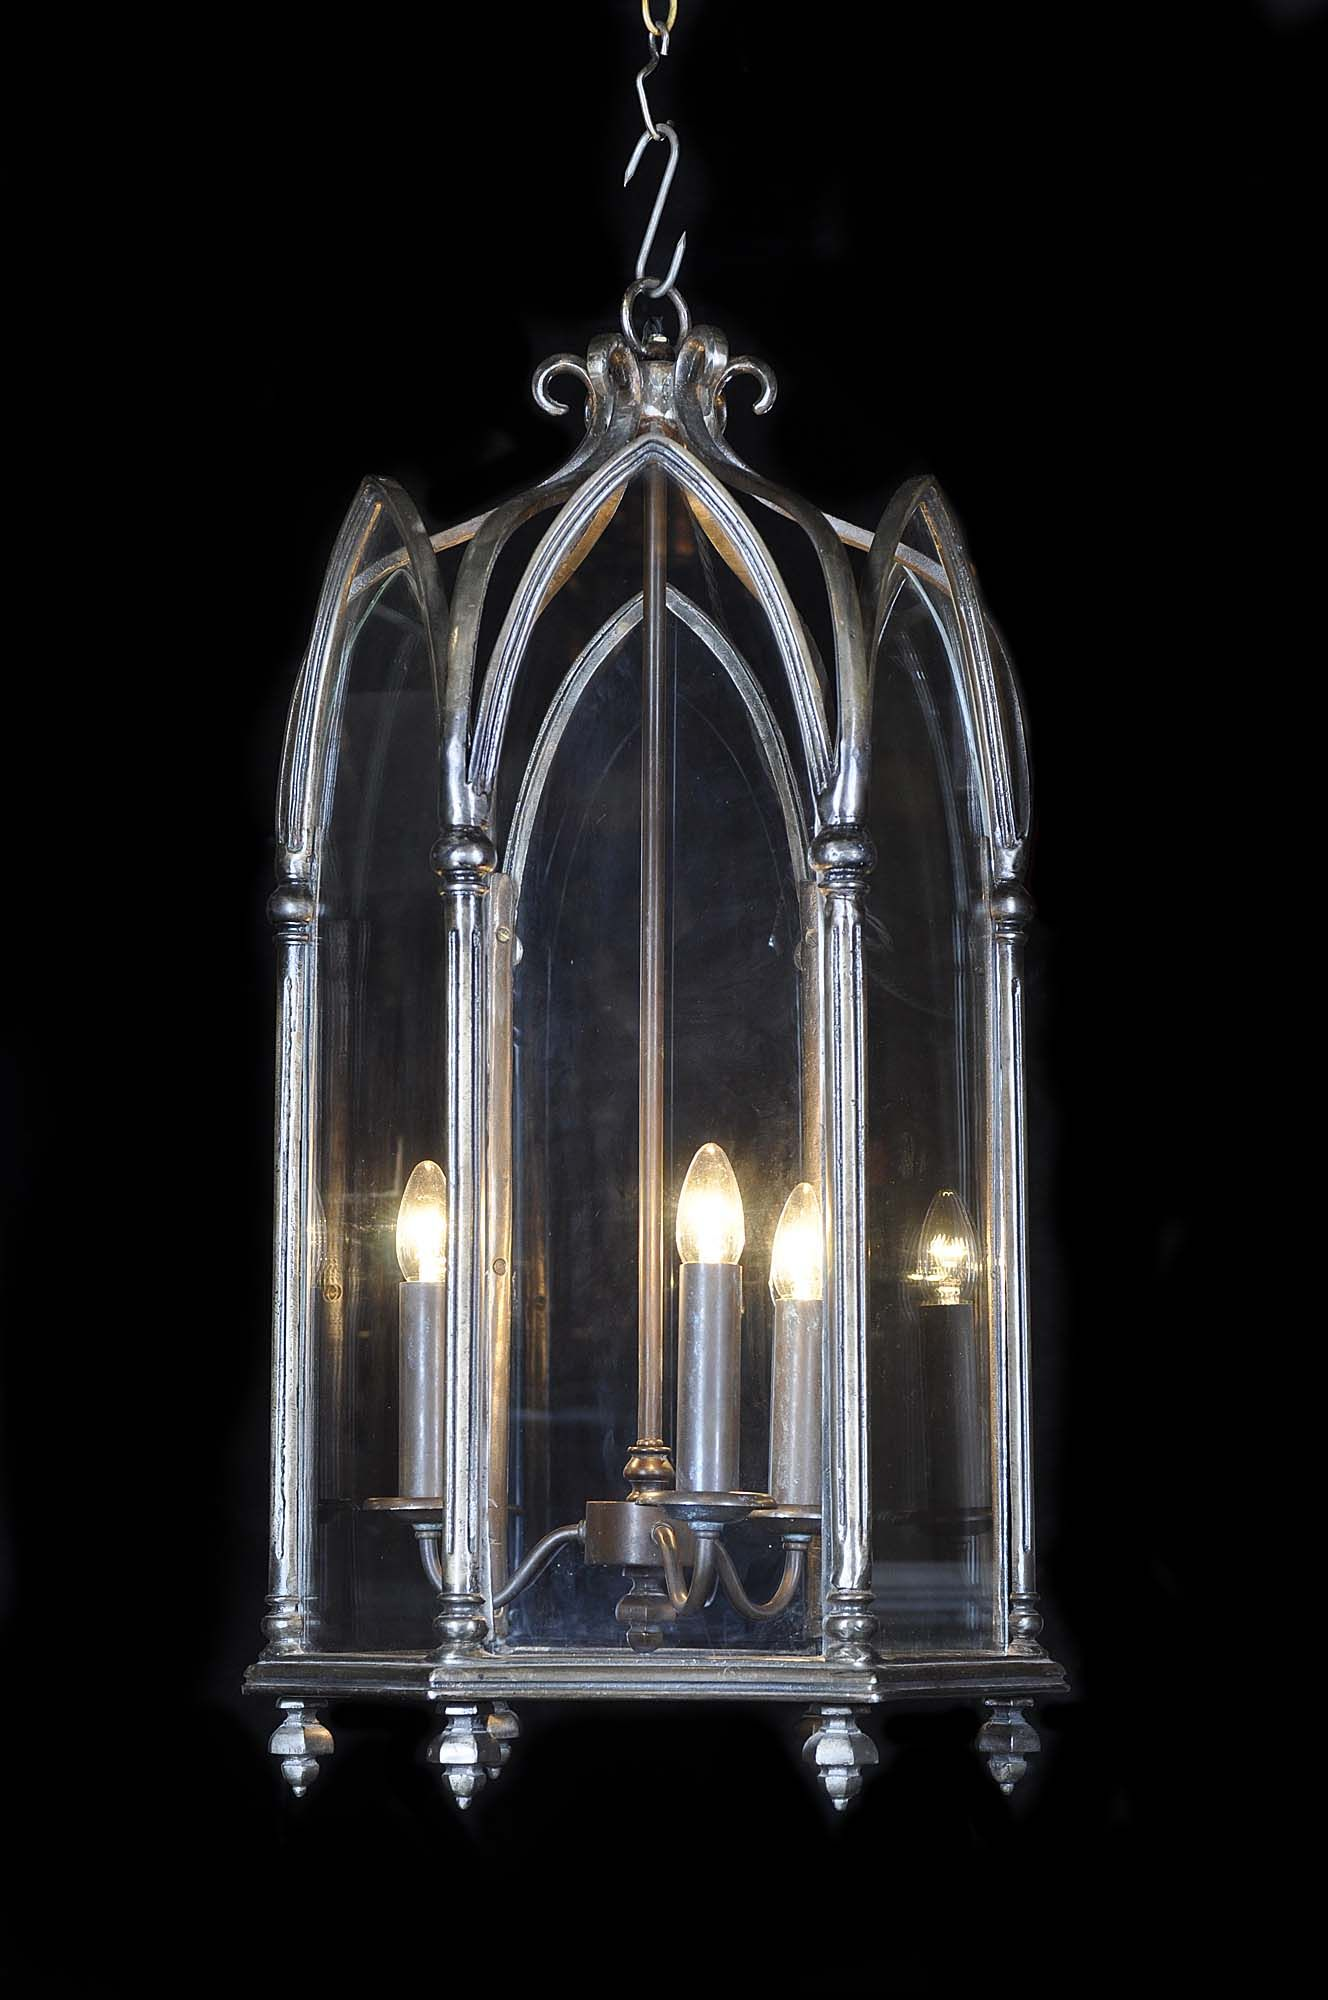 Antique style neo gothic hall lantern lanterns street lamp antique style neo gothic hall lantern arubaitofo Gallery